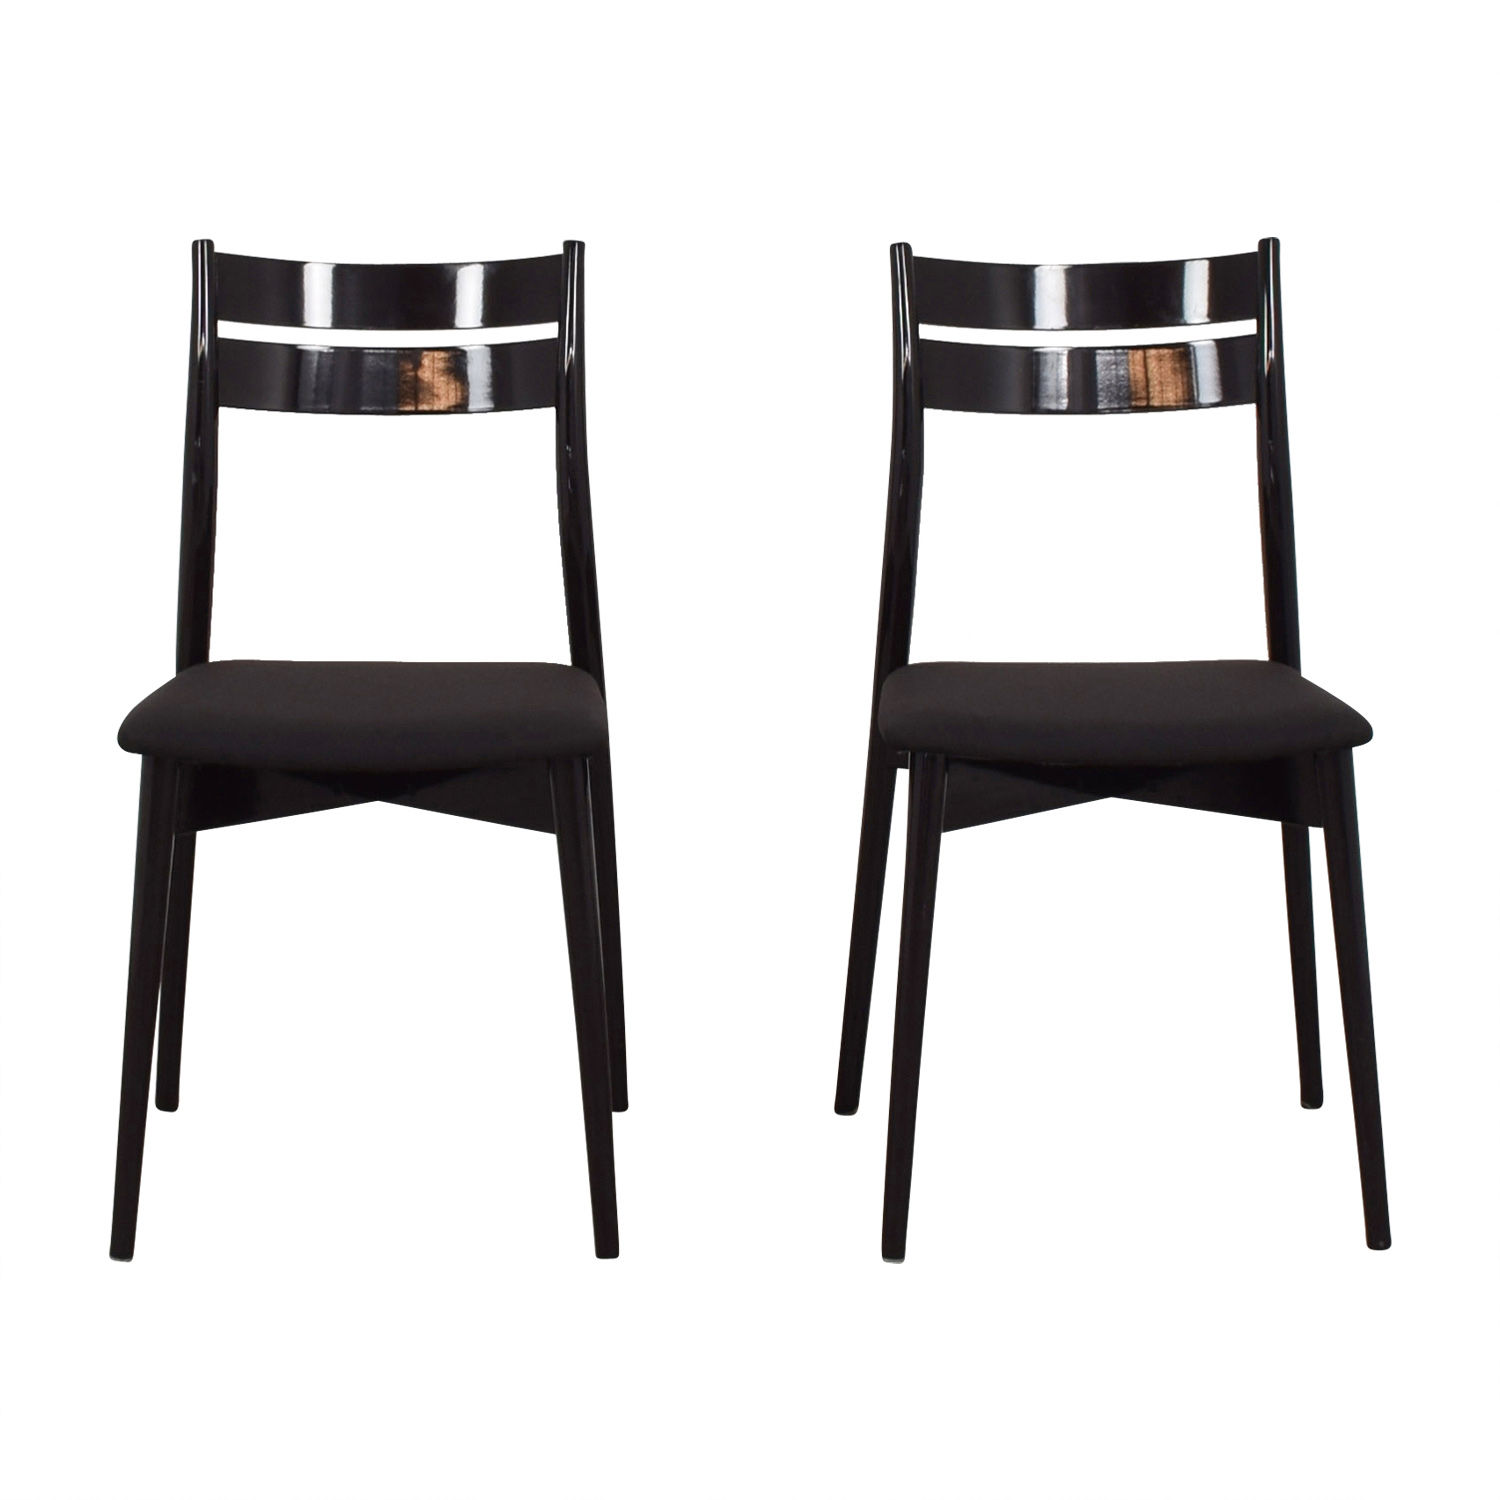 Calligaris Dining Chairs 90 Off Calligaris Calligaris Black Dining Chairs Chairs